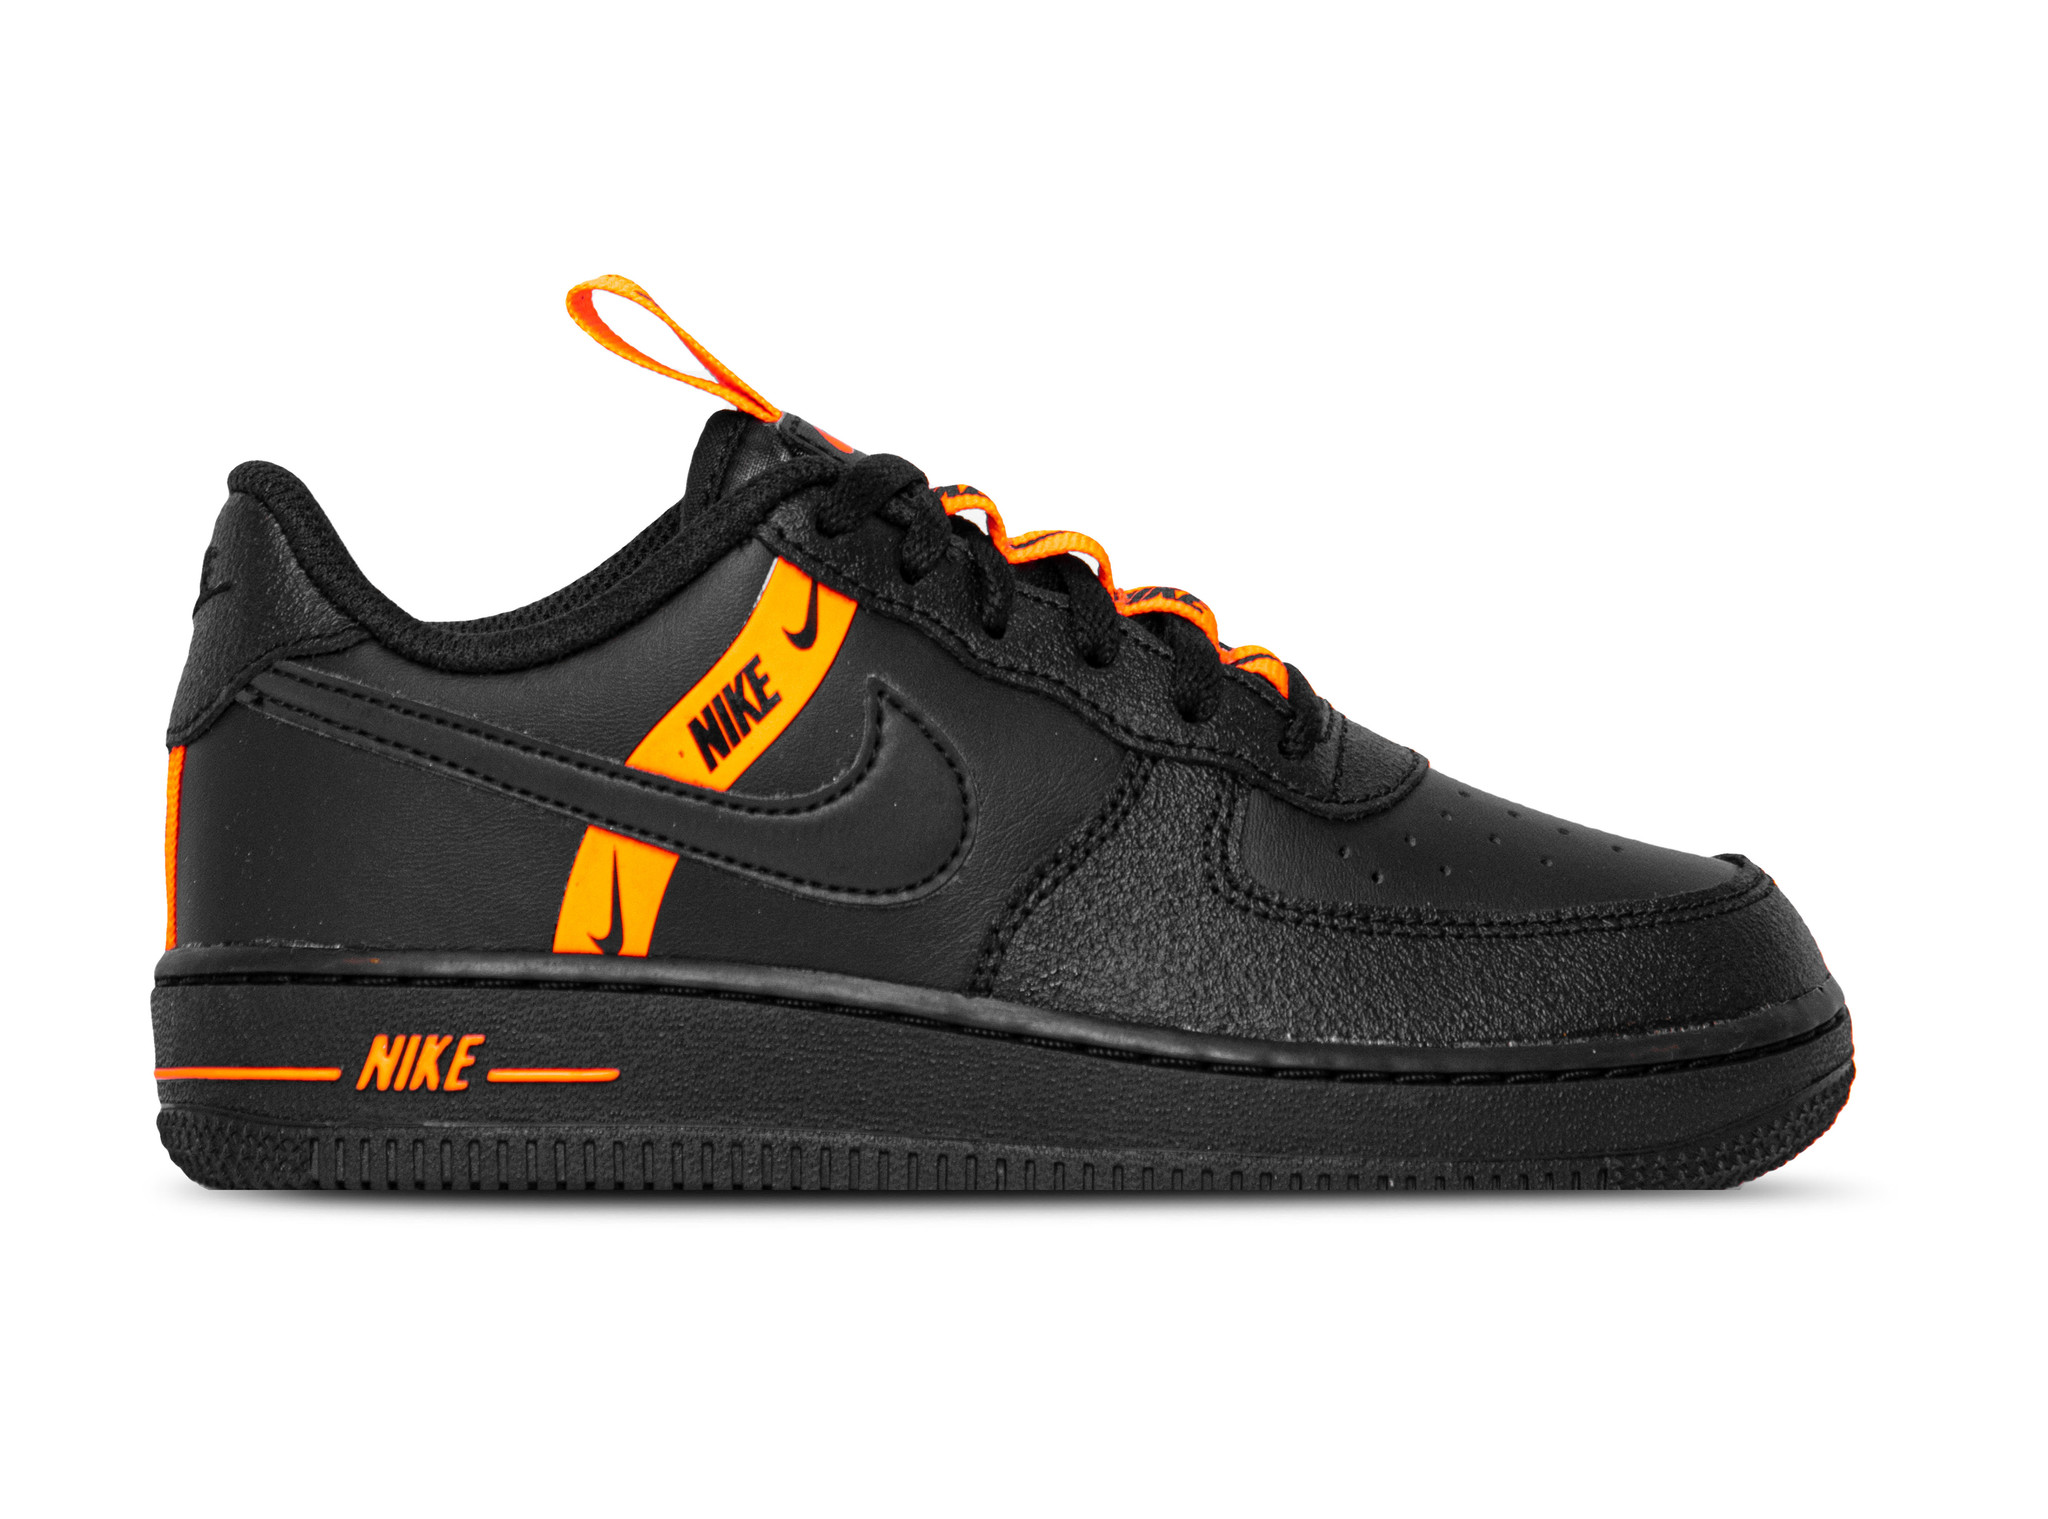 Air Force 1 Lv8 Ksa Online Store, UP TO 53% OFF